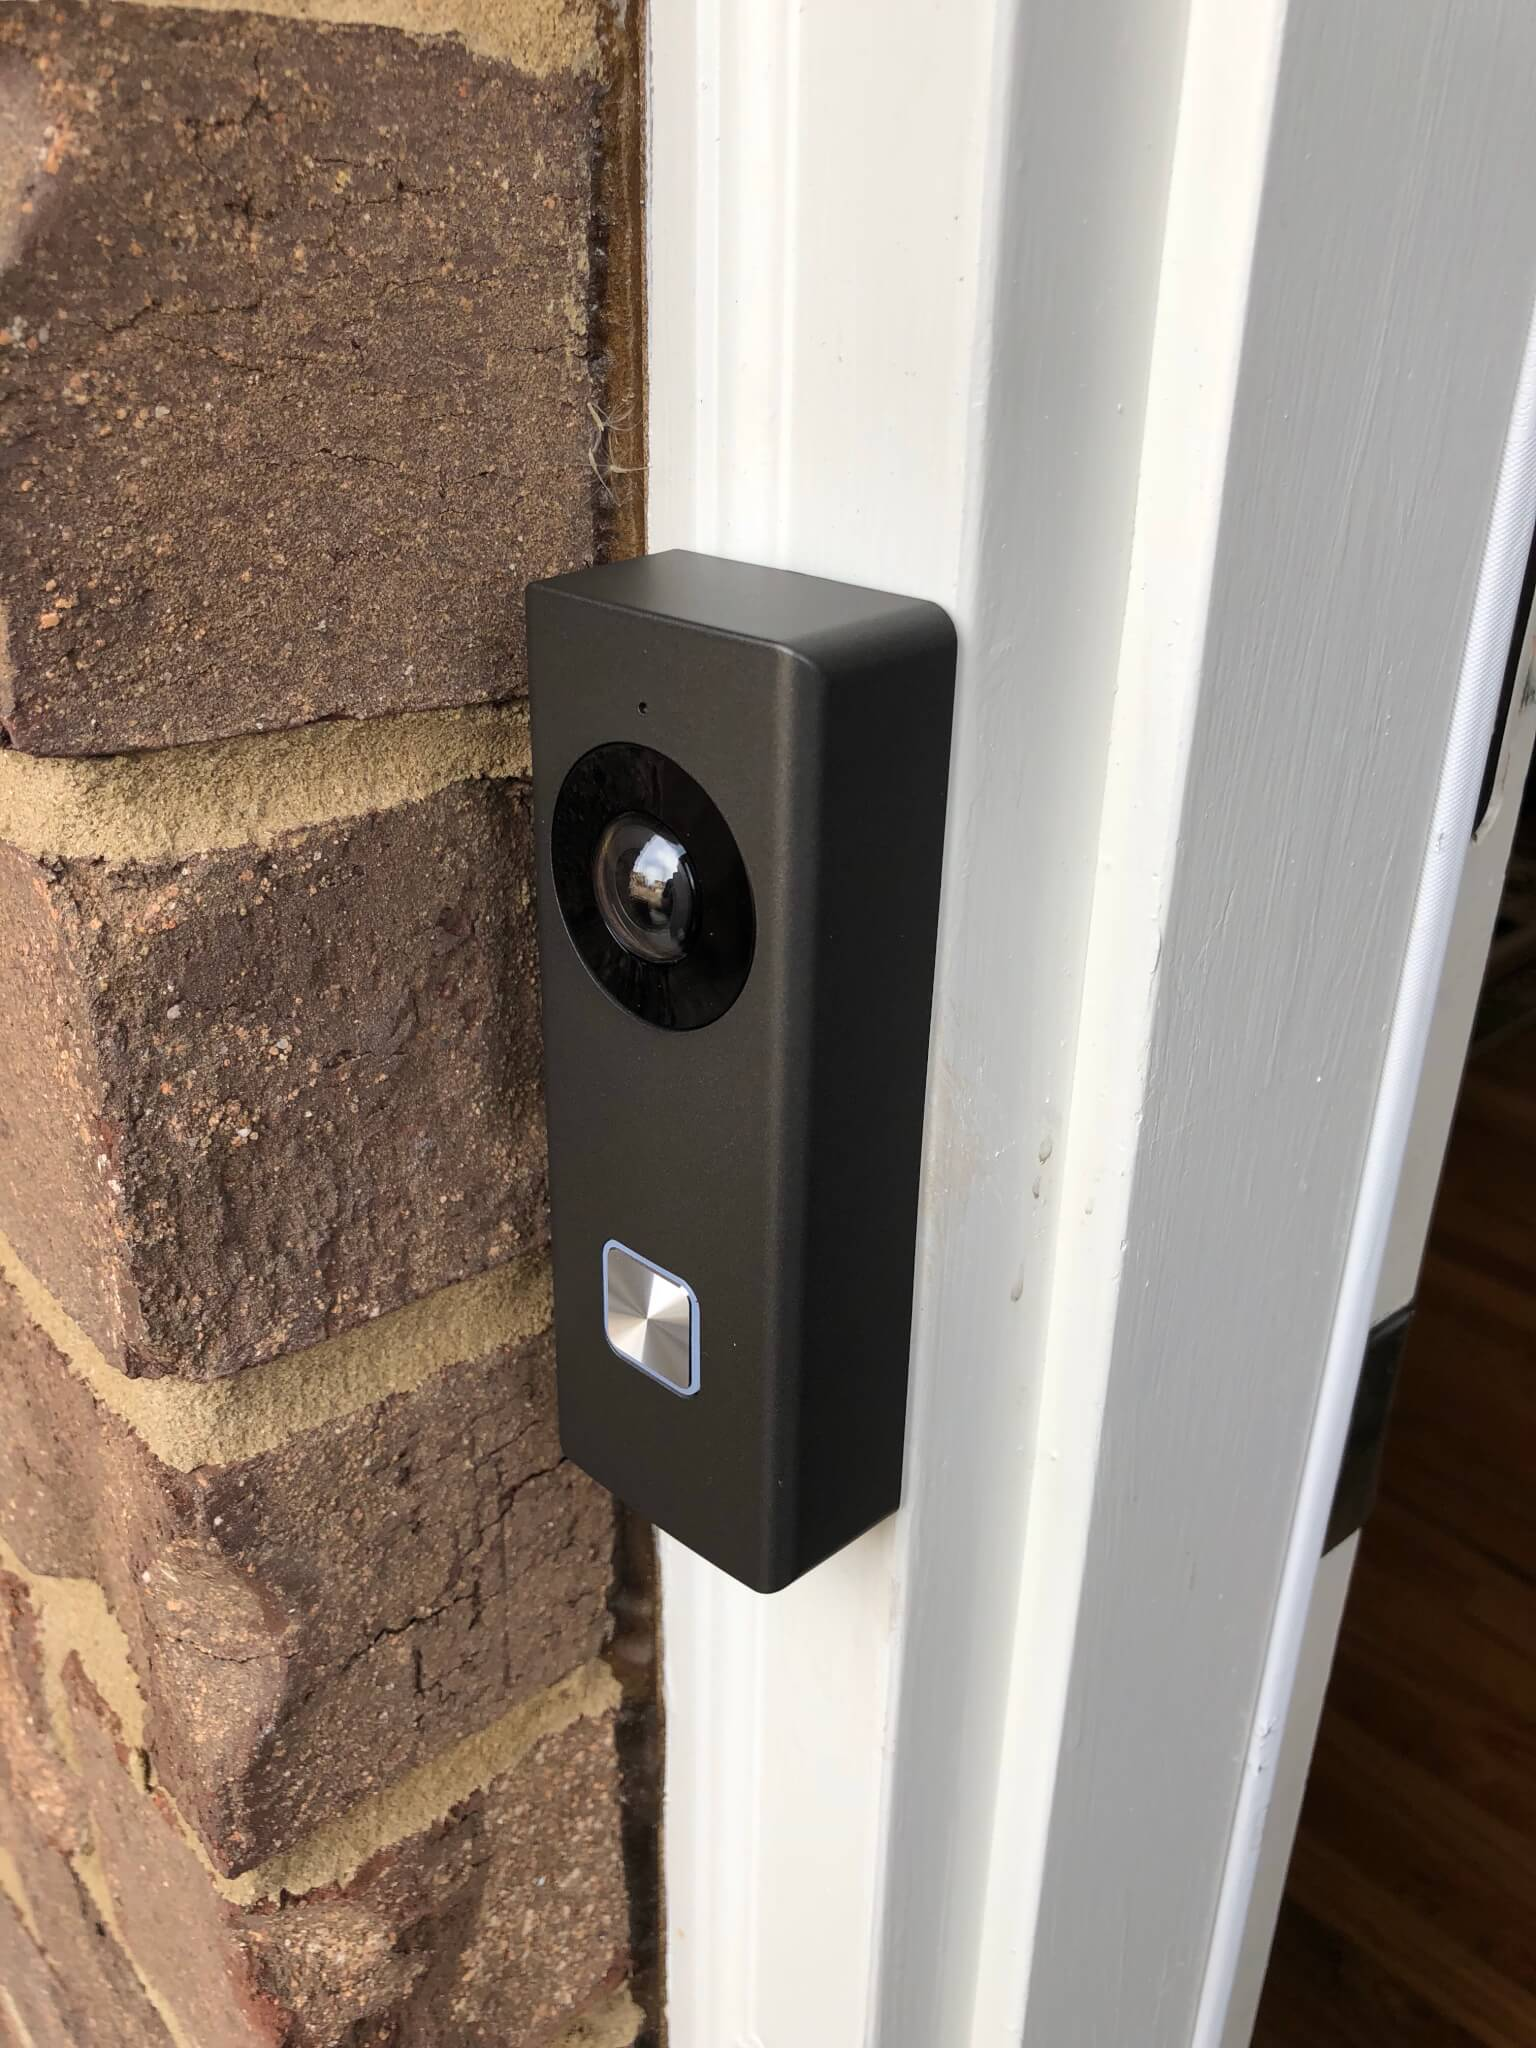 Installing the Nelly Security WiFi Video Doorbell | Automated Home Party